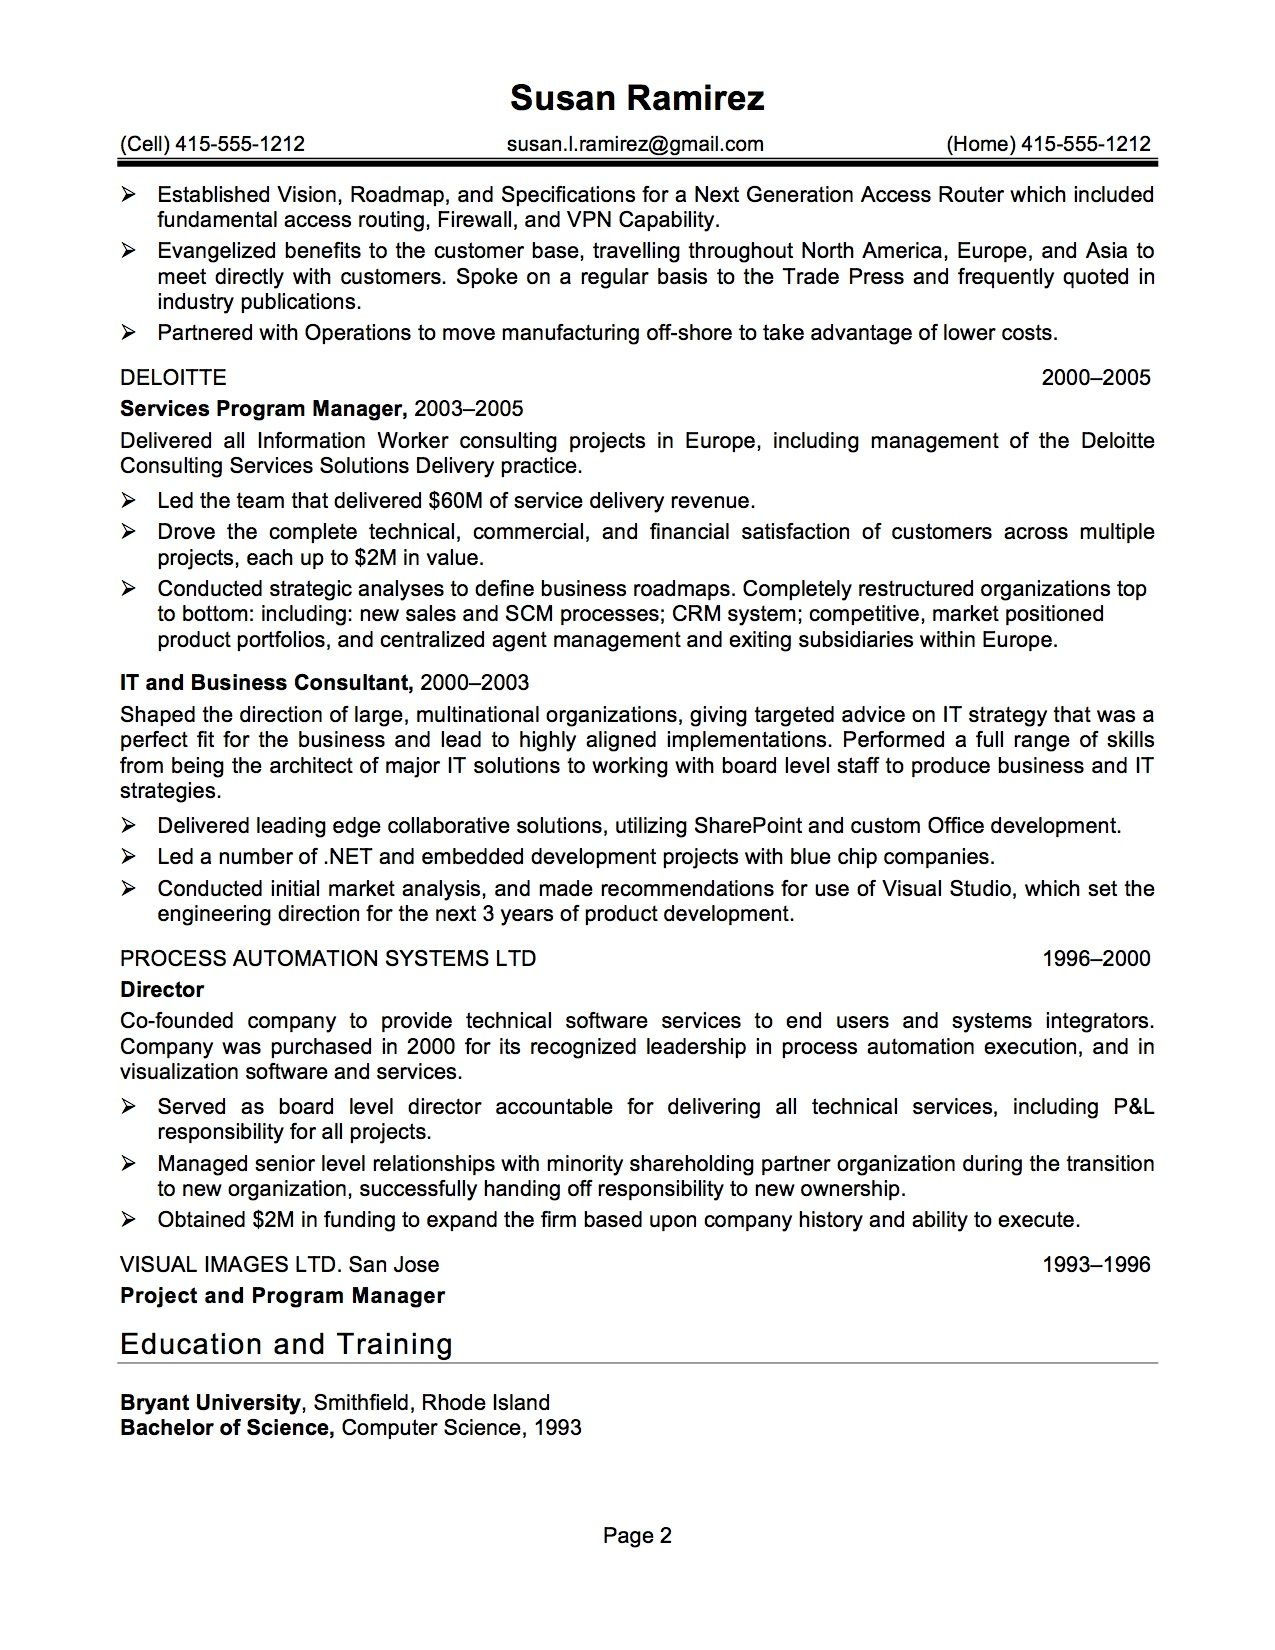 Resume Title Example Inspire You How Create Good Professional Auto Clerk  Templates Showcase Your Talent  What Is A Good Resume Title